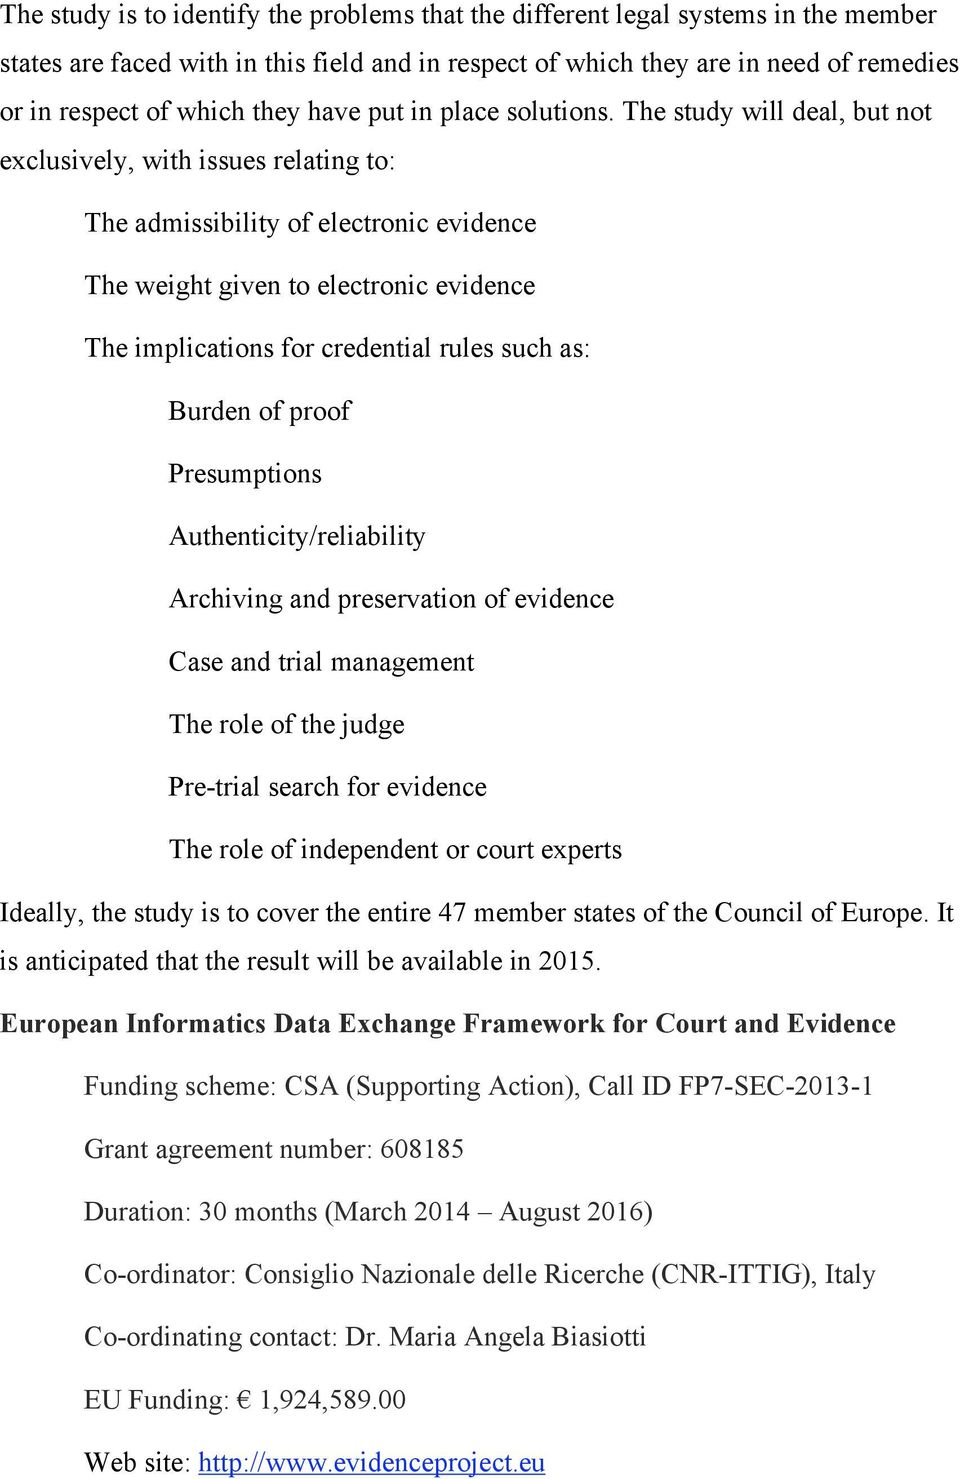 The study will deal, but not exclusively, with issues relating to: The admissibility of electronic evidence The weight given to electronic evidence The implications for credential rules such as: